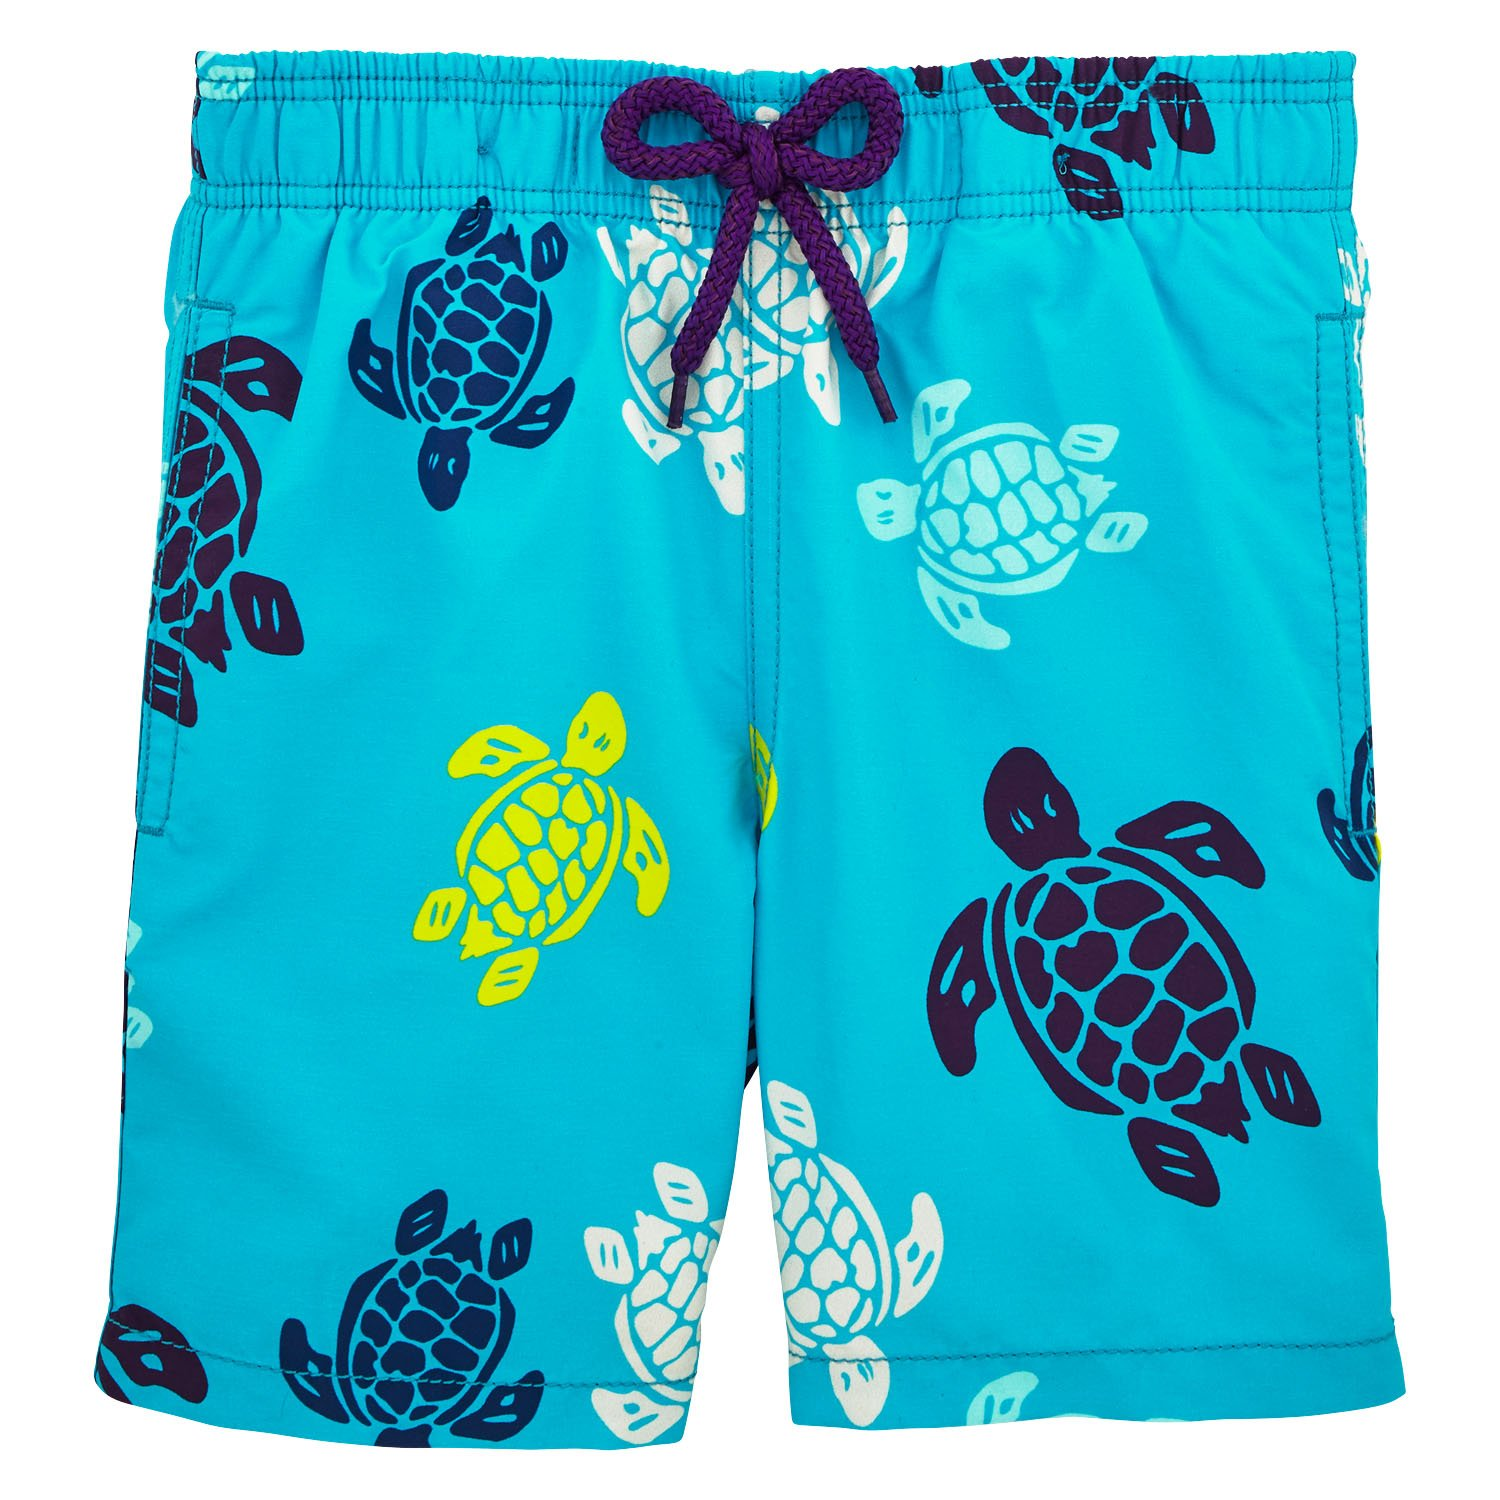 Vilebrequin Tortues Multicolores Swim Shorts - Boys - azure - 8Yrs by Vilebrequin